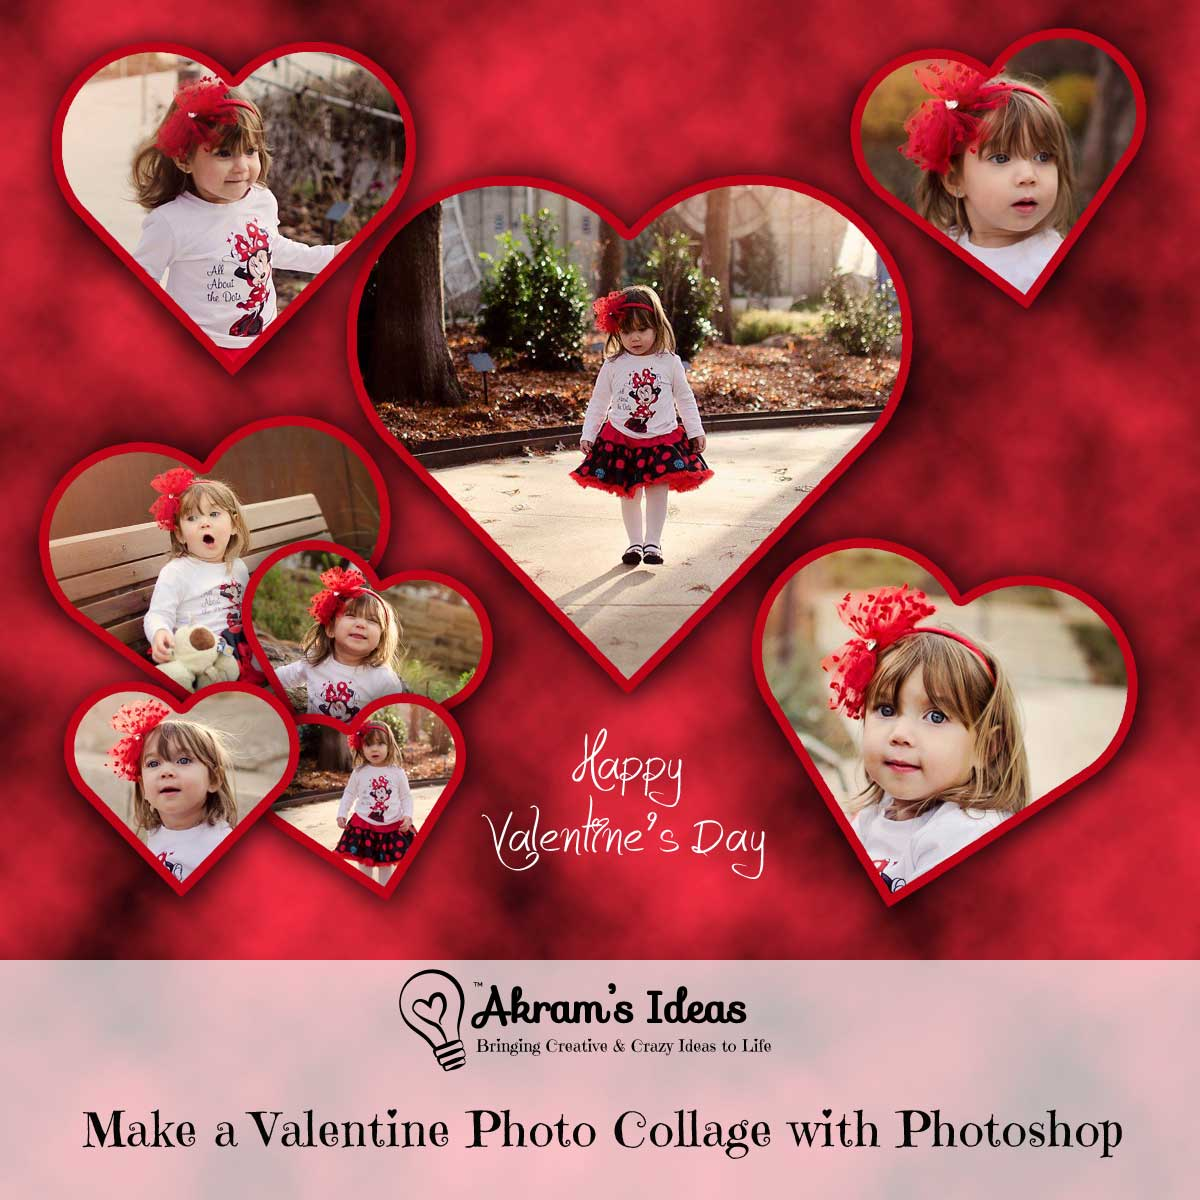 Akram's Ideas: Make a Valentine Photo Collage with Photoshop